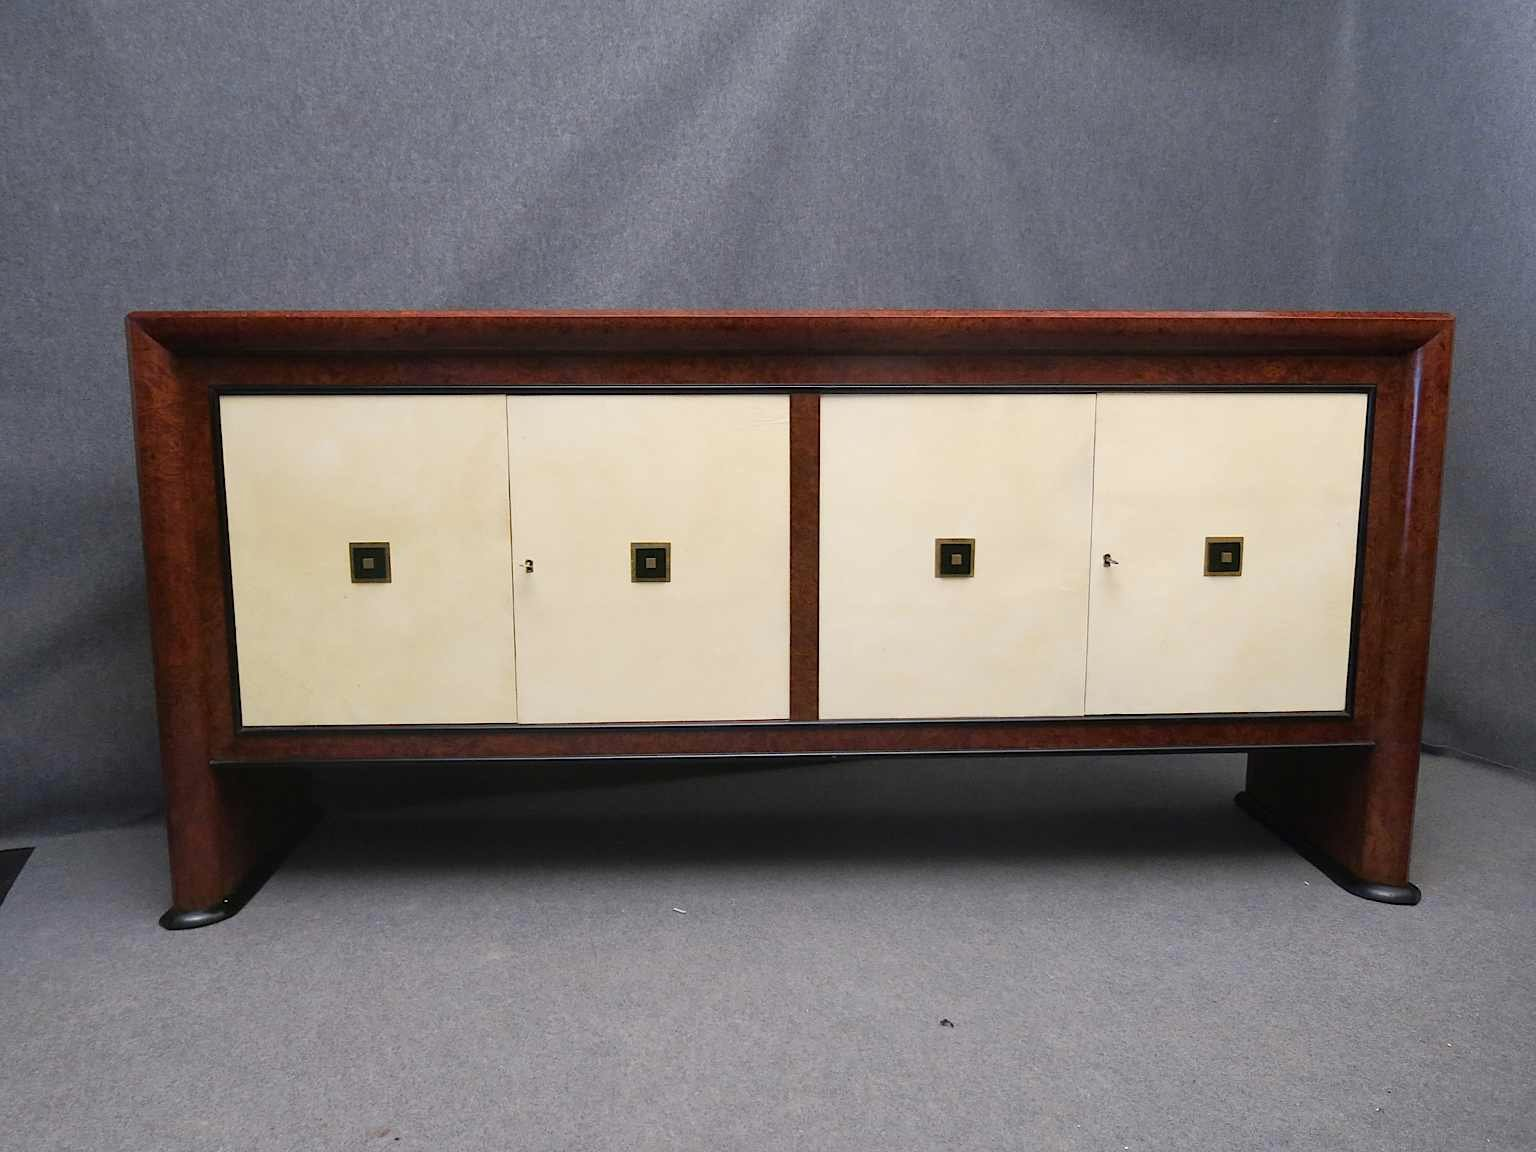 italian art deco sideboard 1940 for sale at pamono. Black Bedroom Furniture Sets. Home Design Ideas